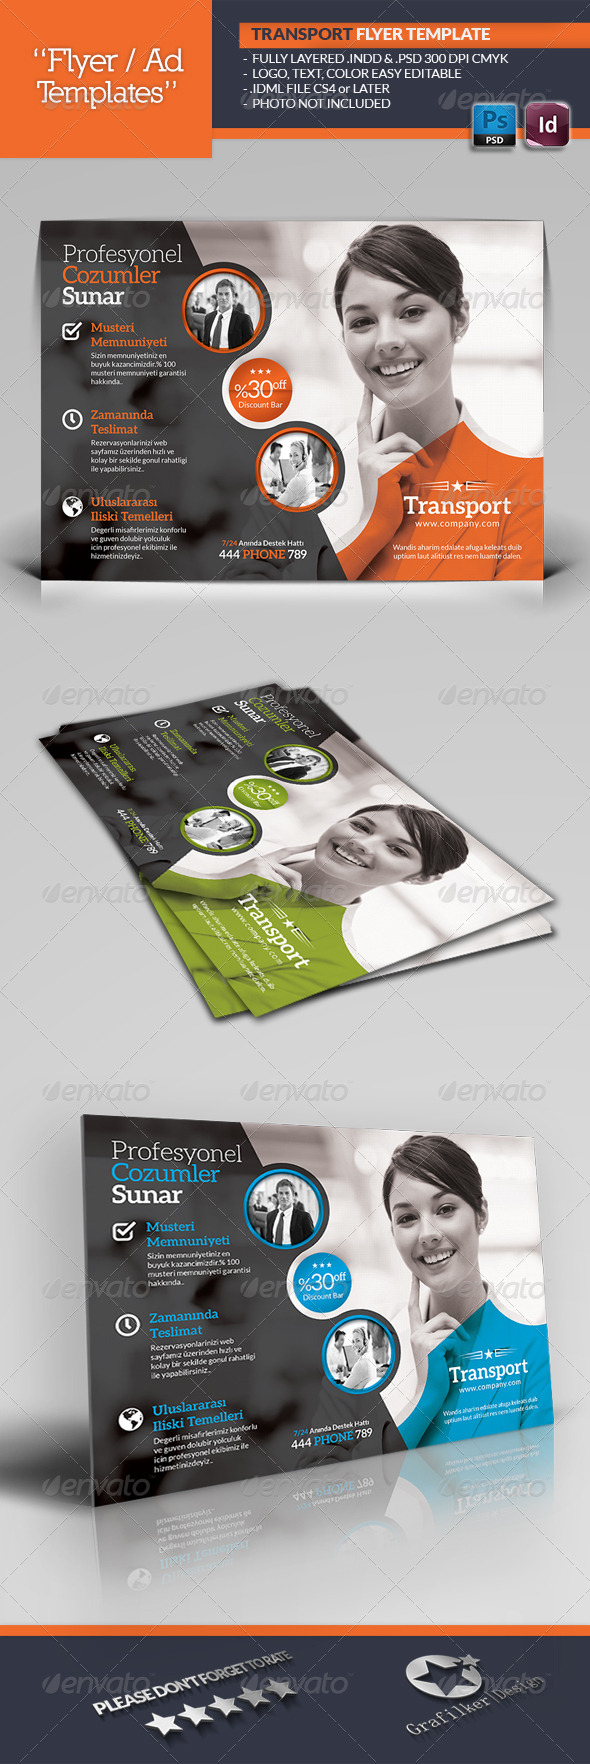 GraphicRiver Transport Flyer Template 5373865